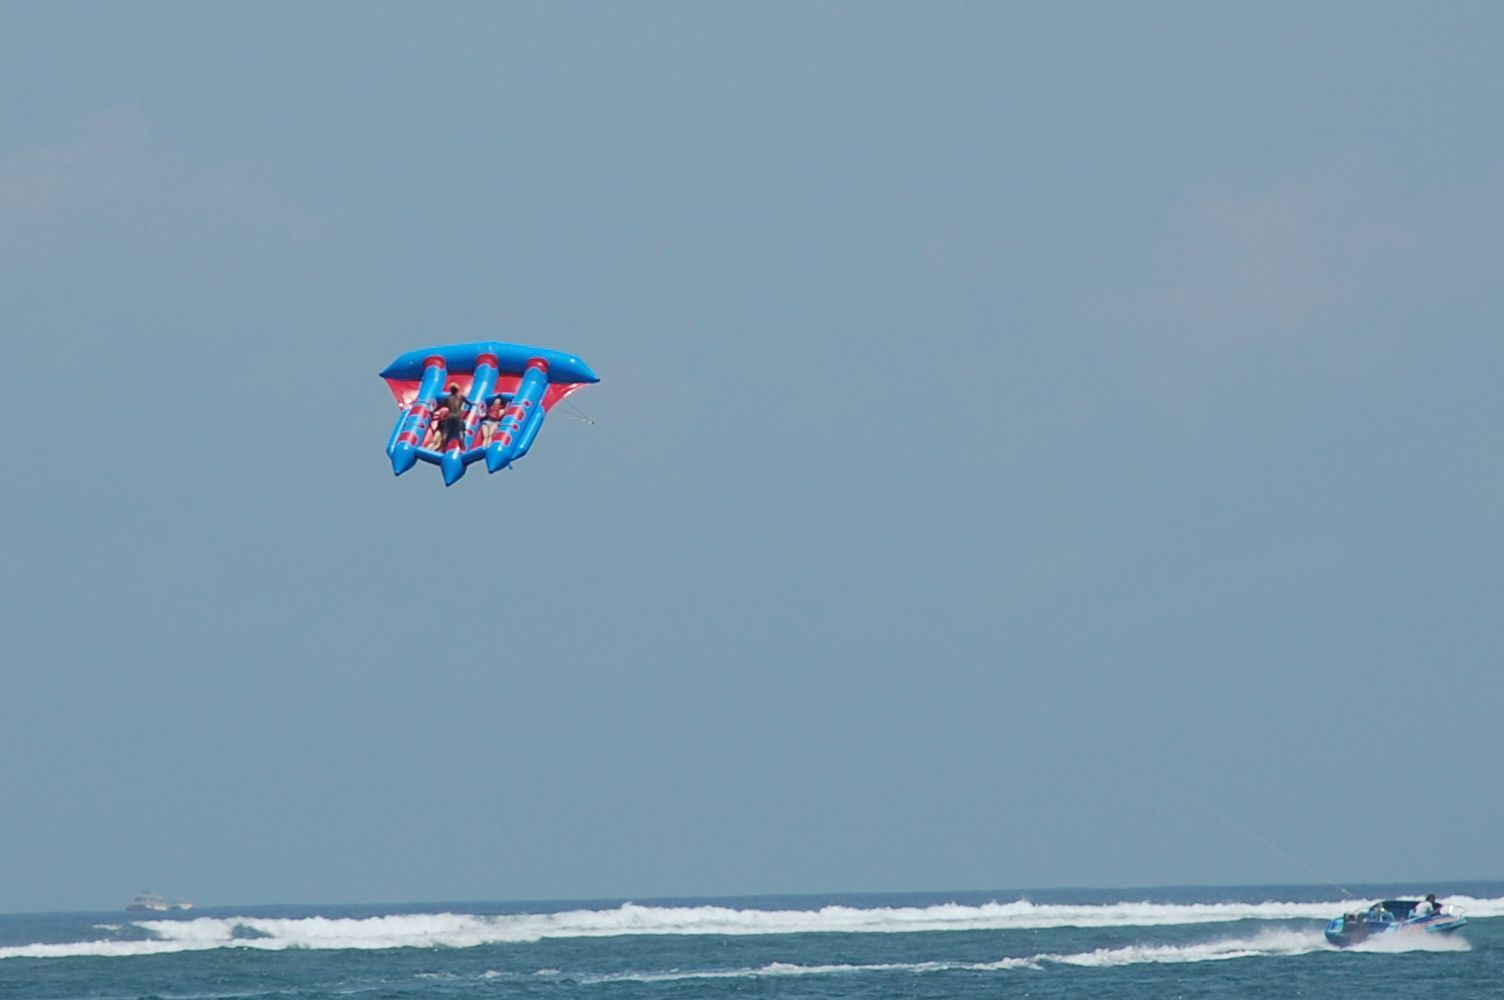 Flying fish water sport - photo#53